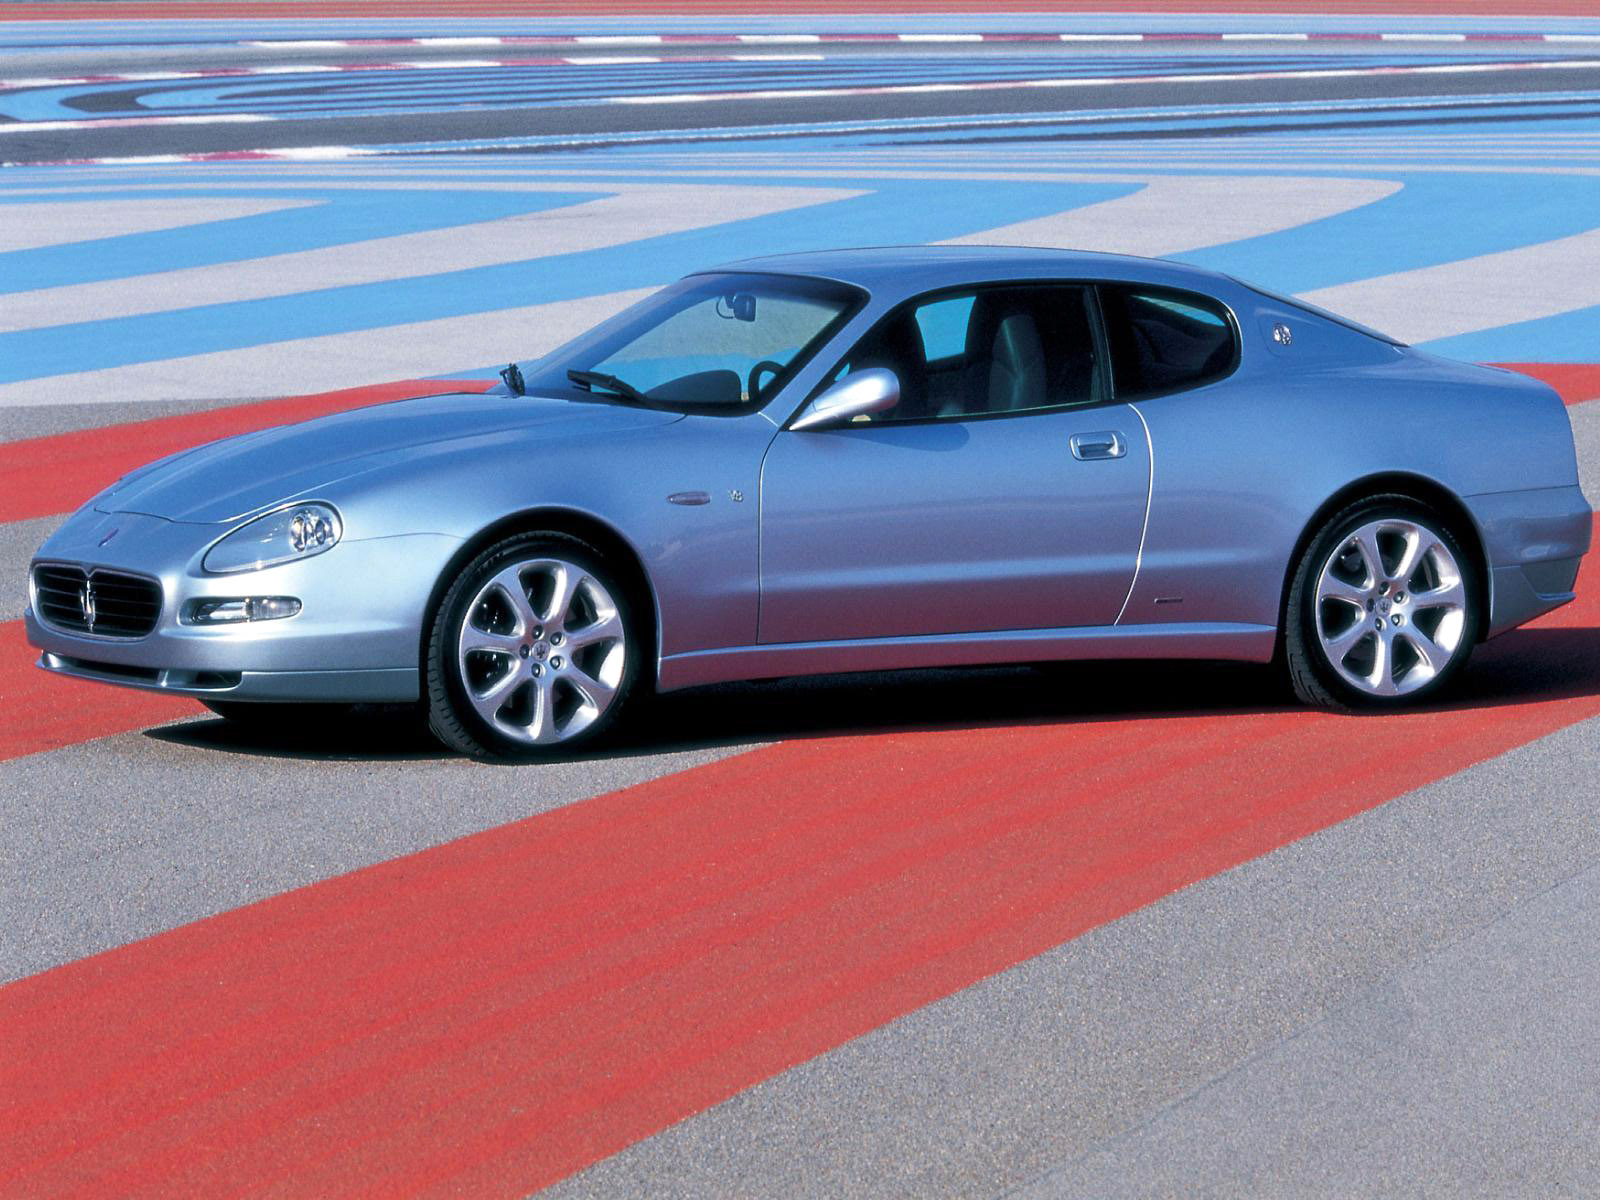 2005_maserati_coupe-pic-31426-1600x1200 Interesting Info About Maserati Spyder for Sale with Breathtaking Photos Cars Review